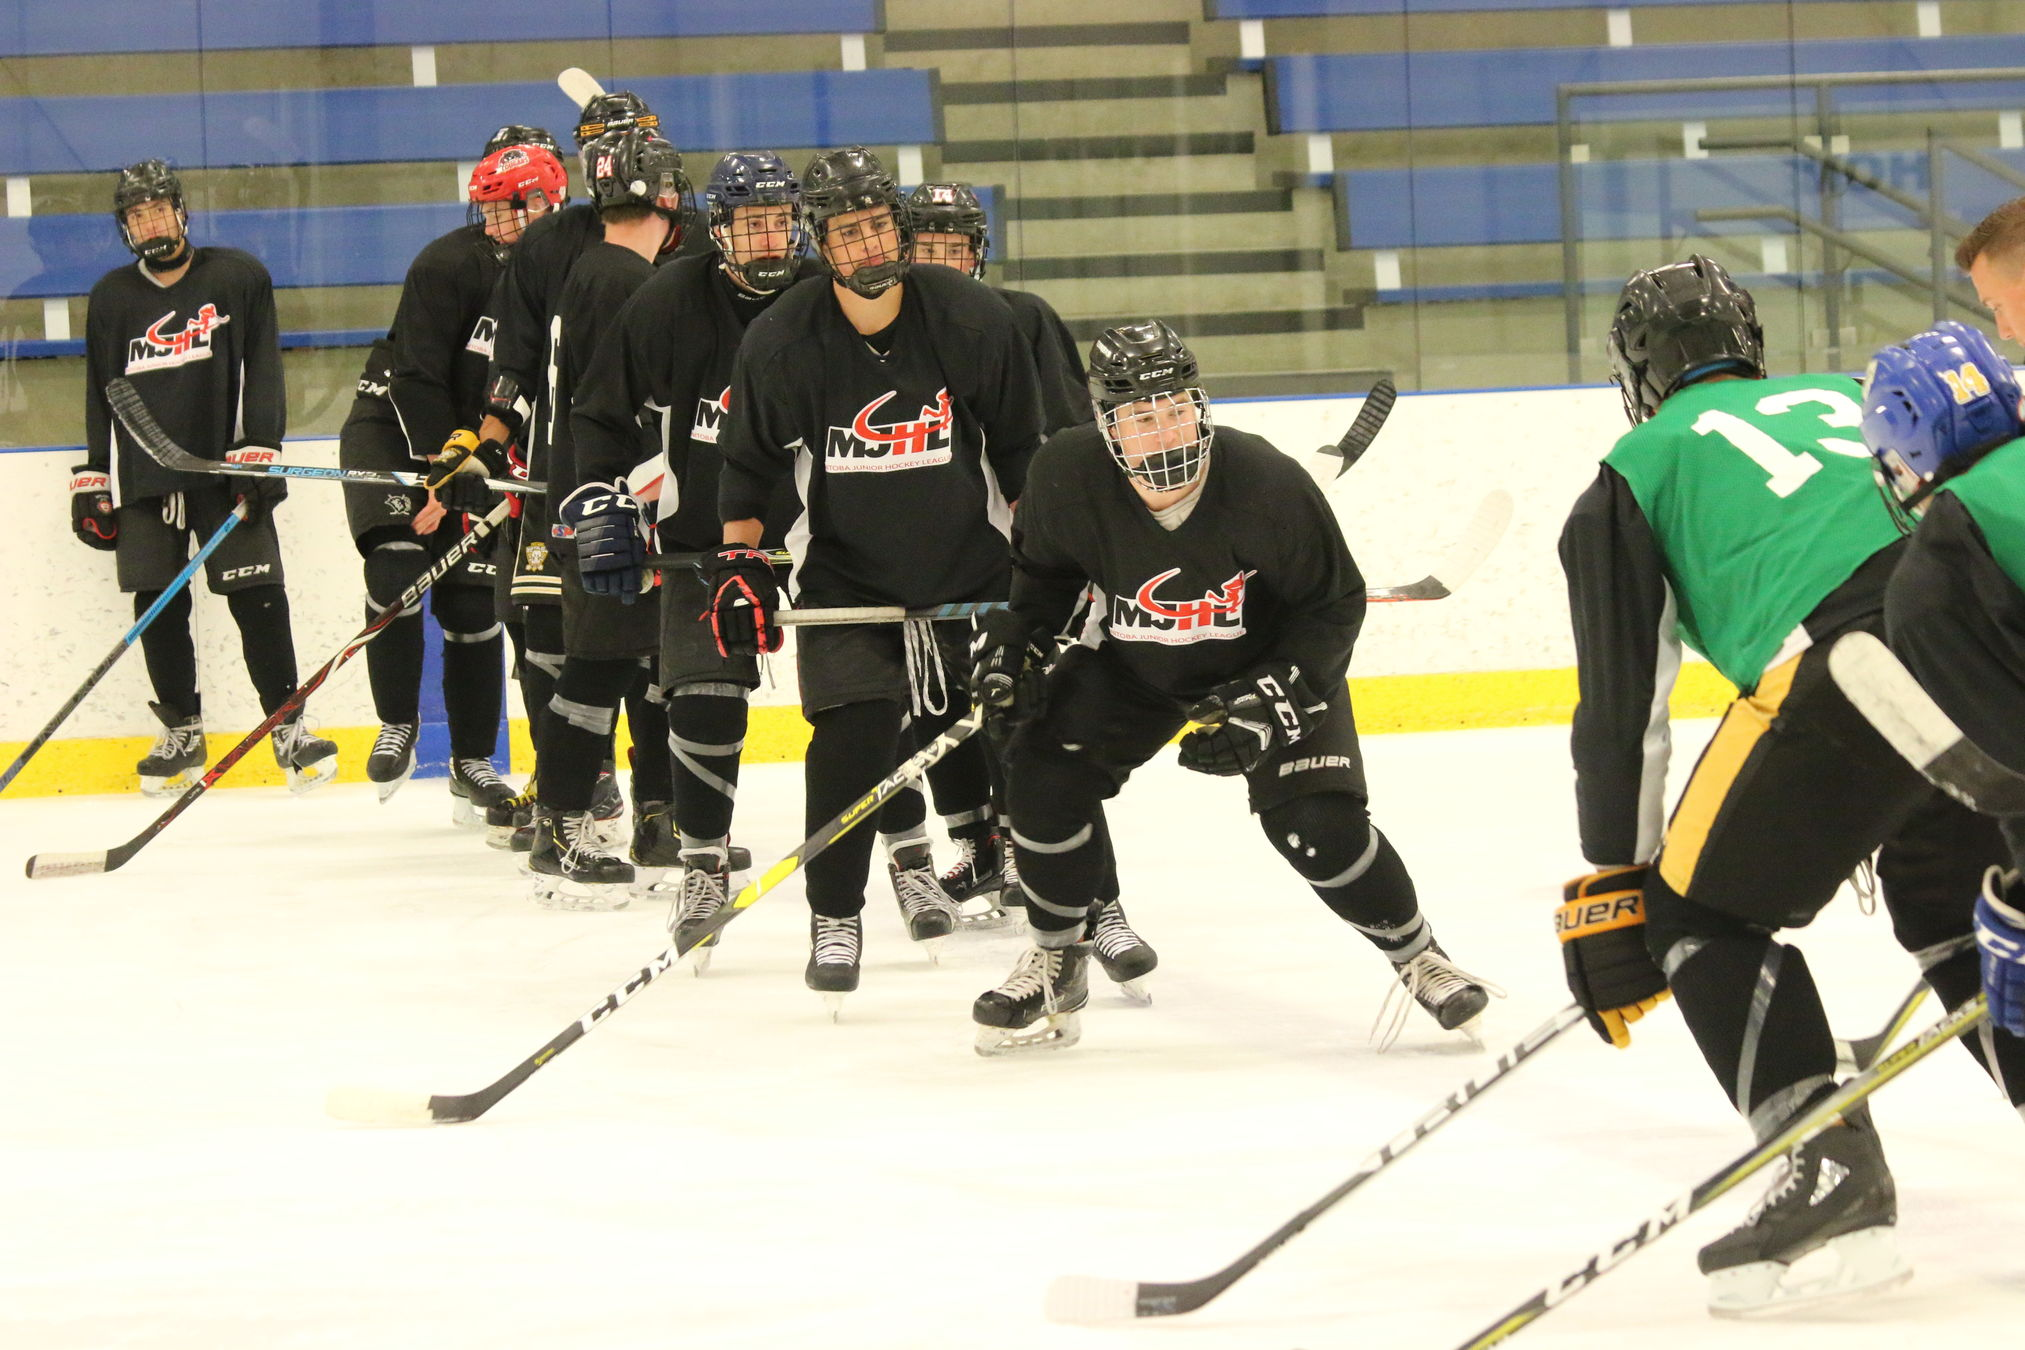 There were a tiotal of 76 players, including four prospects of the Steinbach Pistons that attended the third annual MJHL Prospects Development Camp at the Seven Oaks Sportsplex in Winnipeg last weekend.